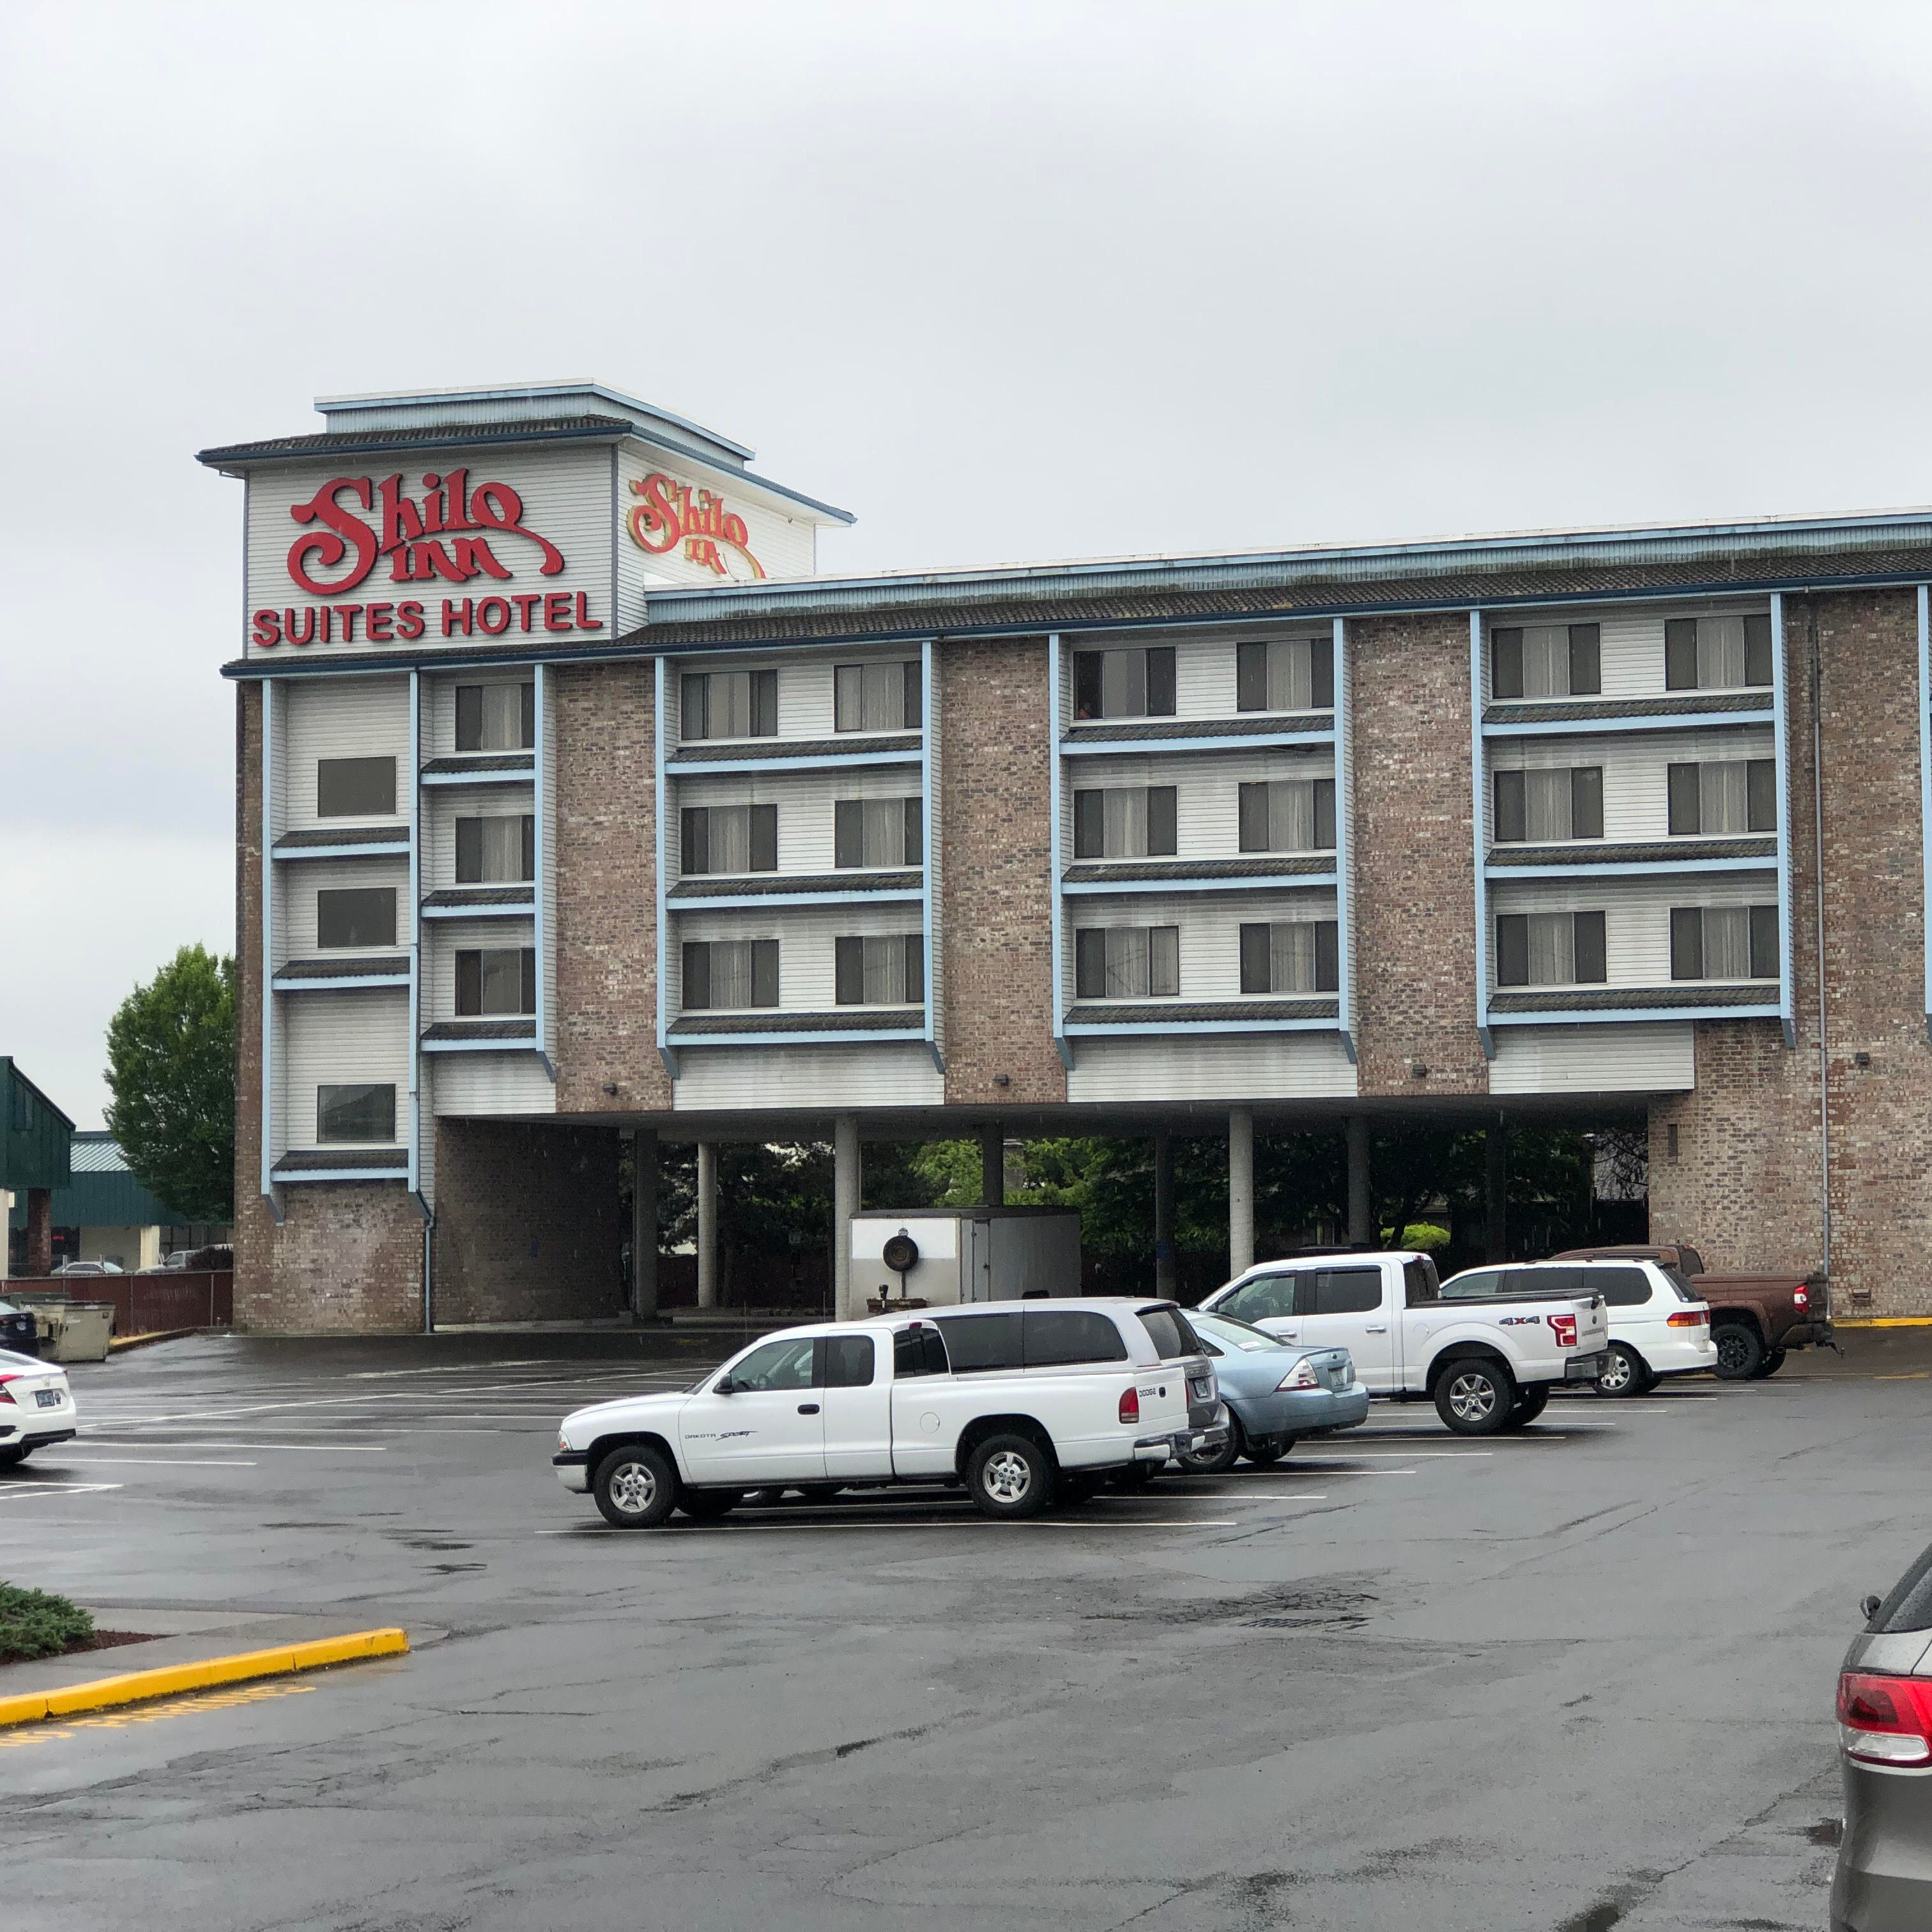 Lawsuit: Salem sues Shilo Inns for more than $143,000 in unpaid taxes, fines